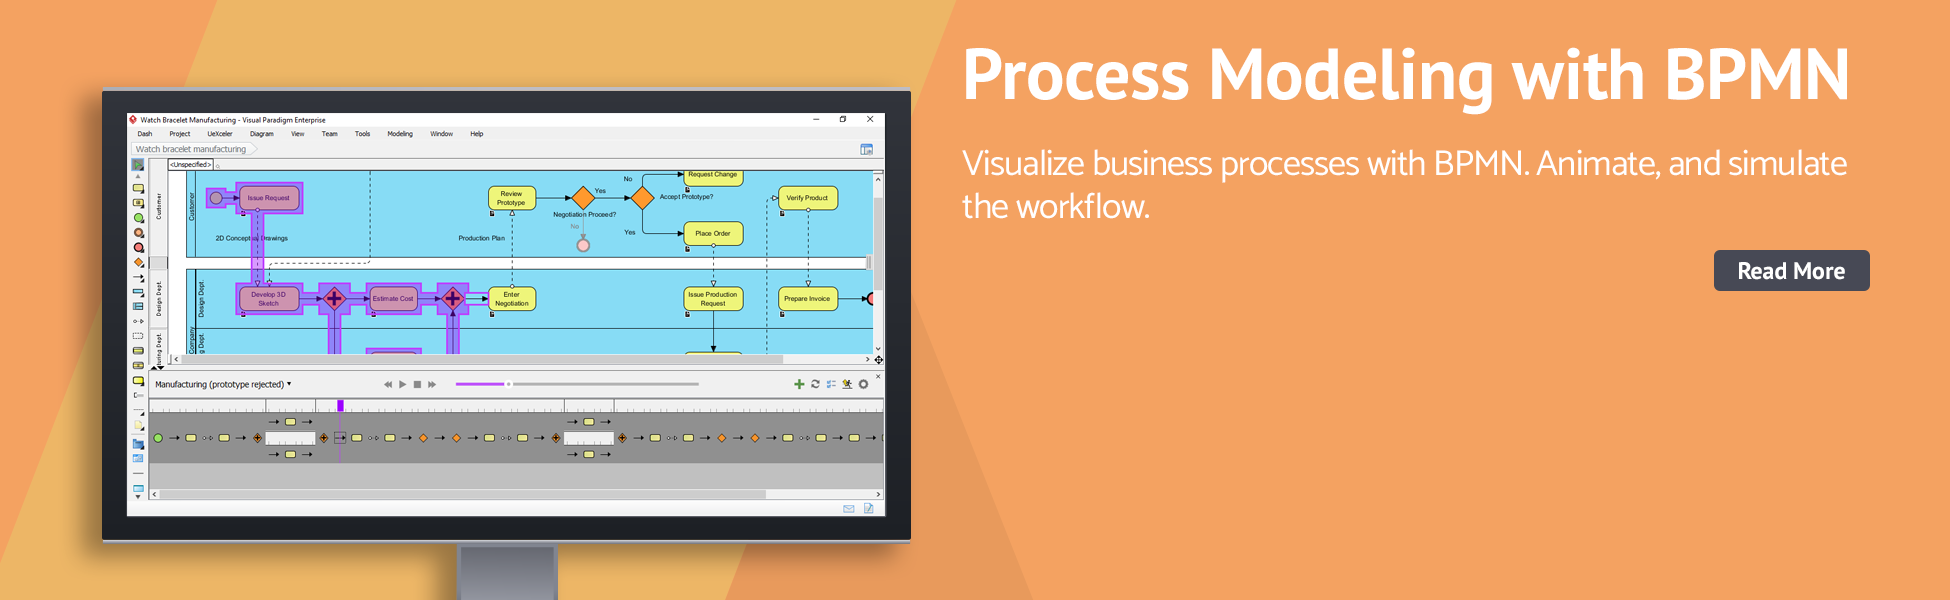 Process Modeling with BPMN